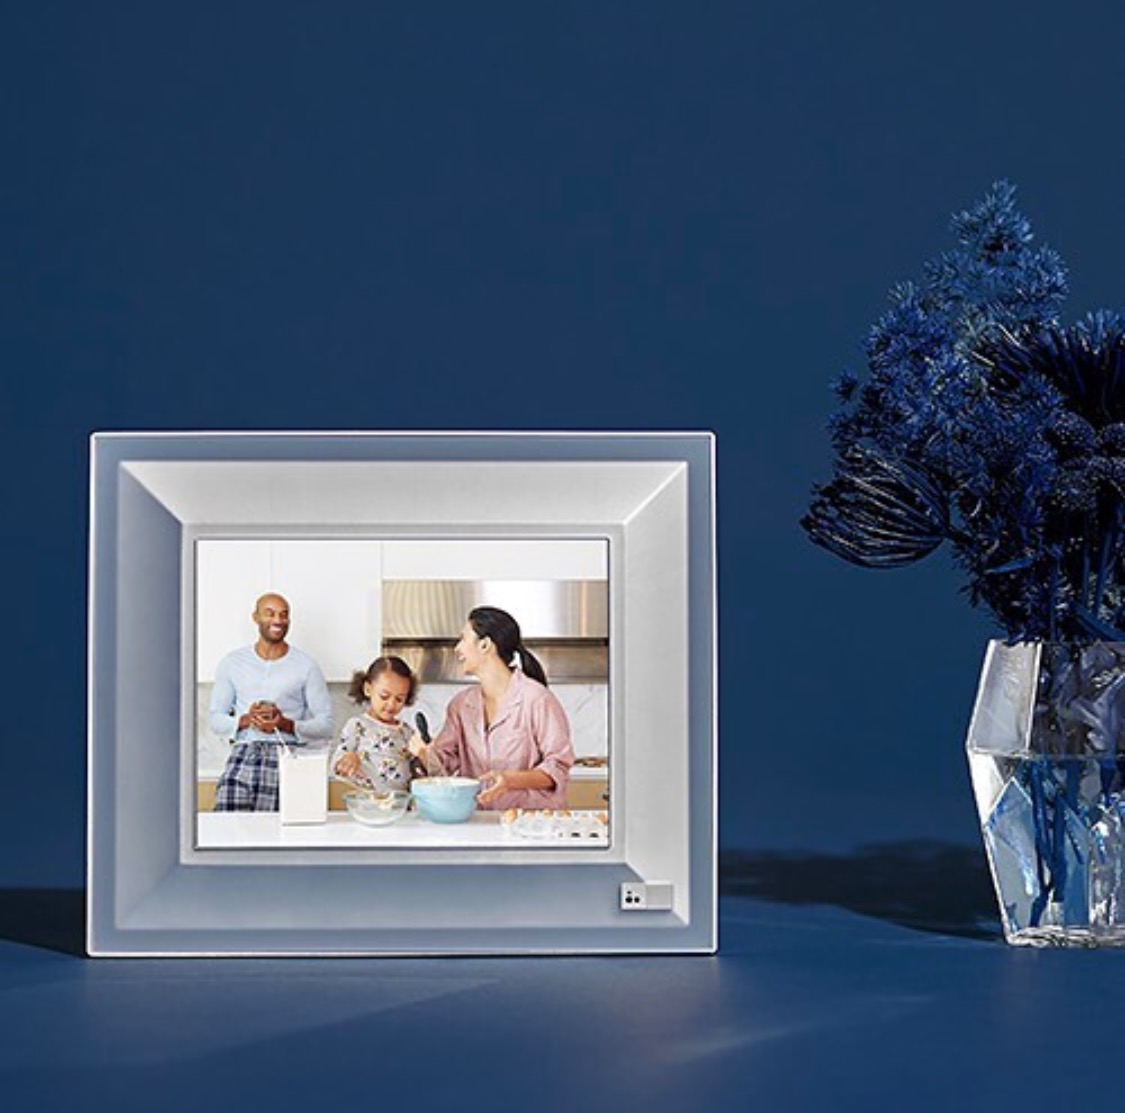 luxurious photo frame